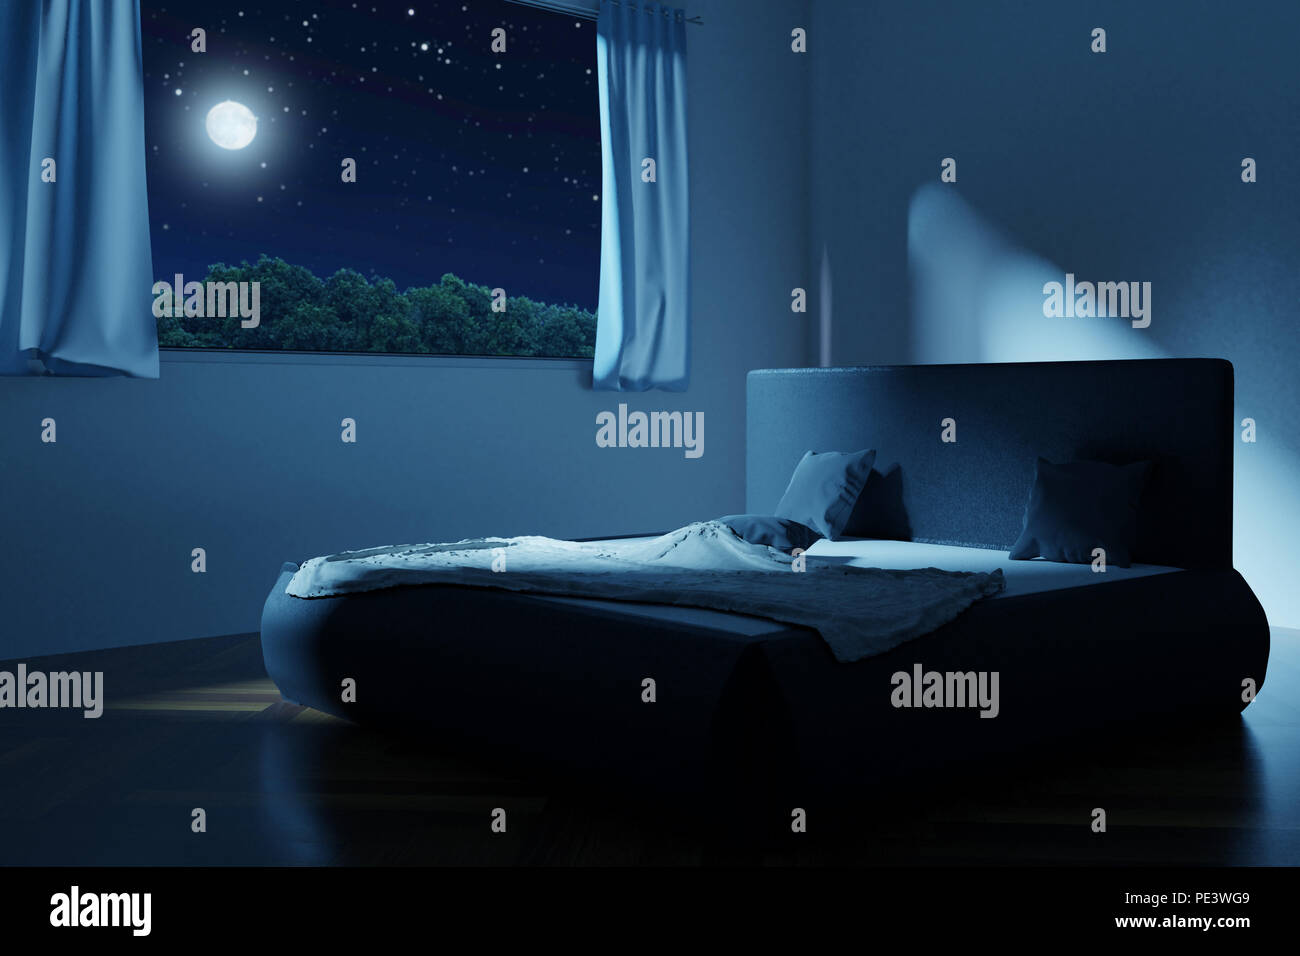 3d Rendering Of Bedroom With Unmade And Rumpled Bed In The Full Moon Night Stock Photo Alamy